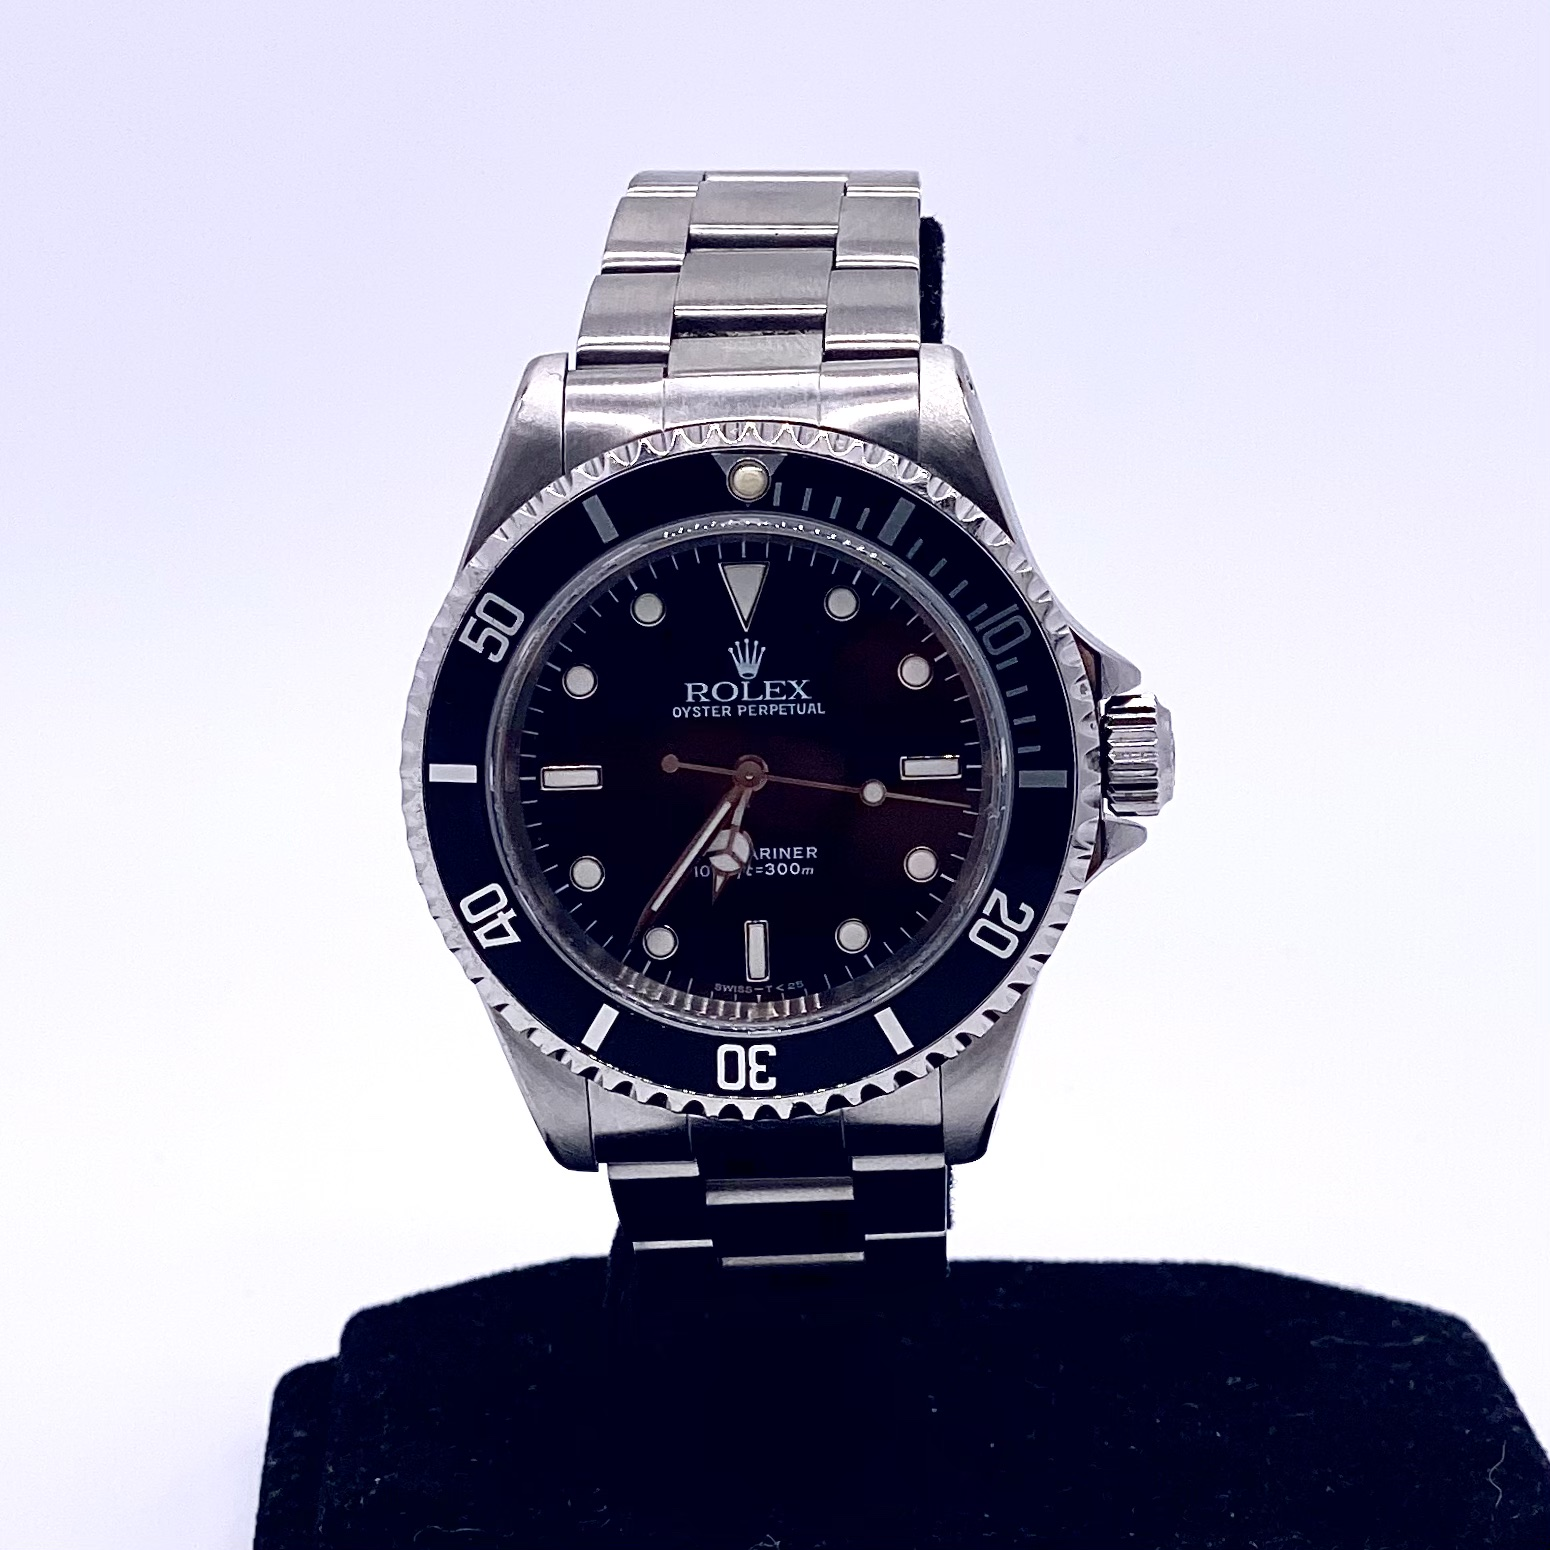 Rolex Submariner ref 14060 Box and Papers